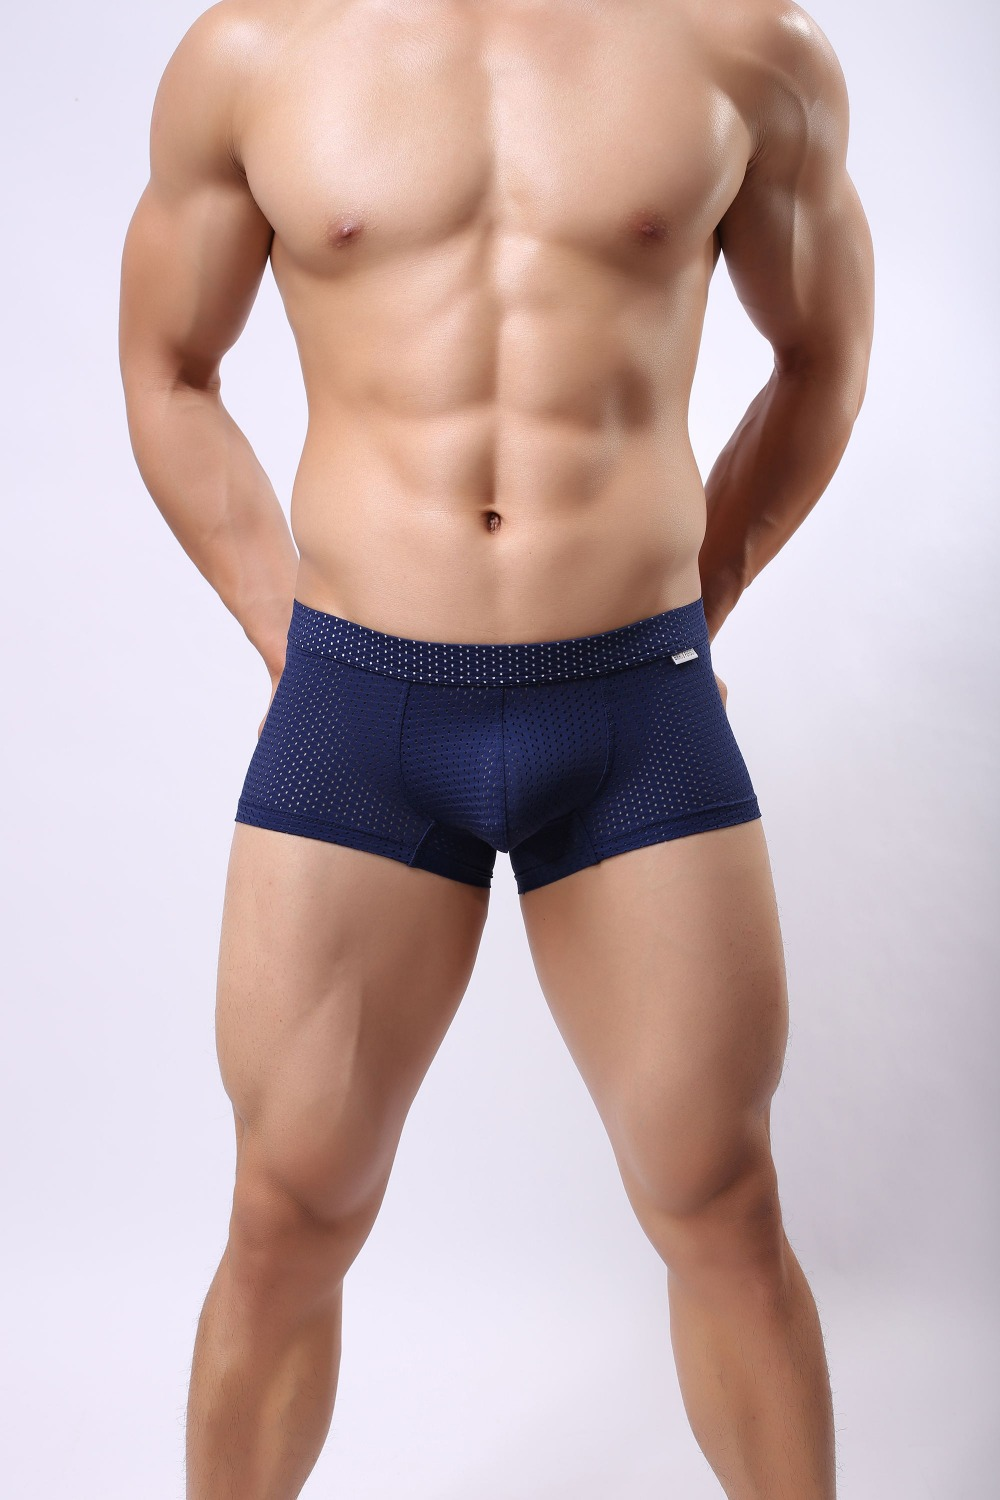 image Underwear men boy gay sexy dick first time